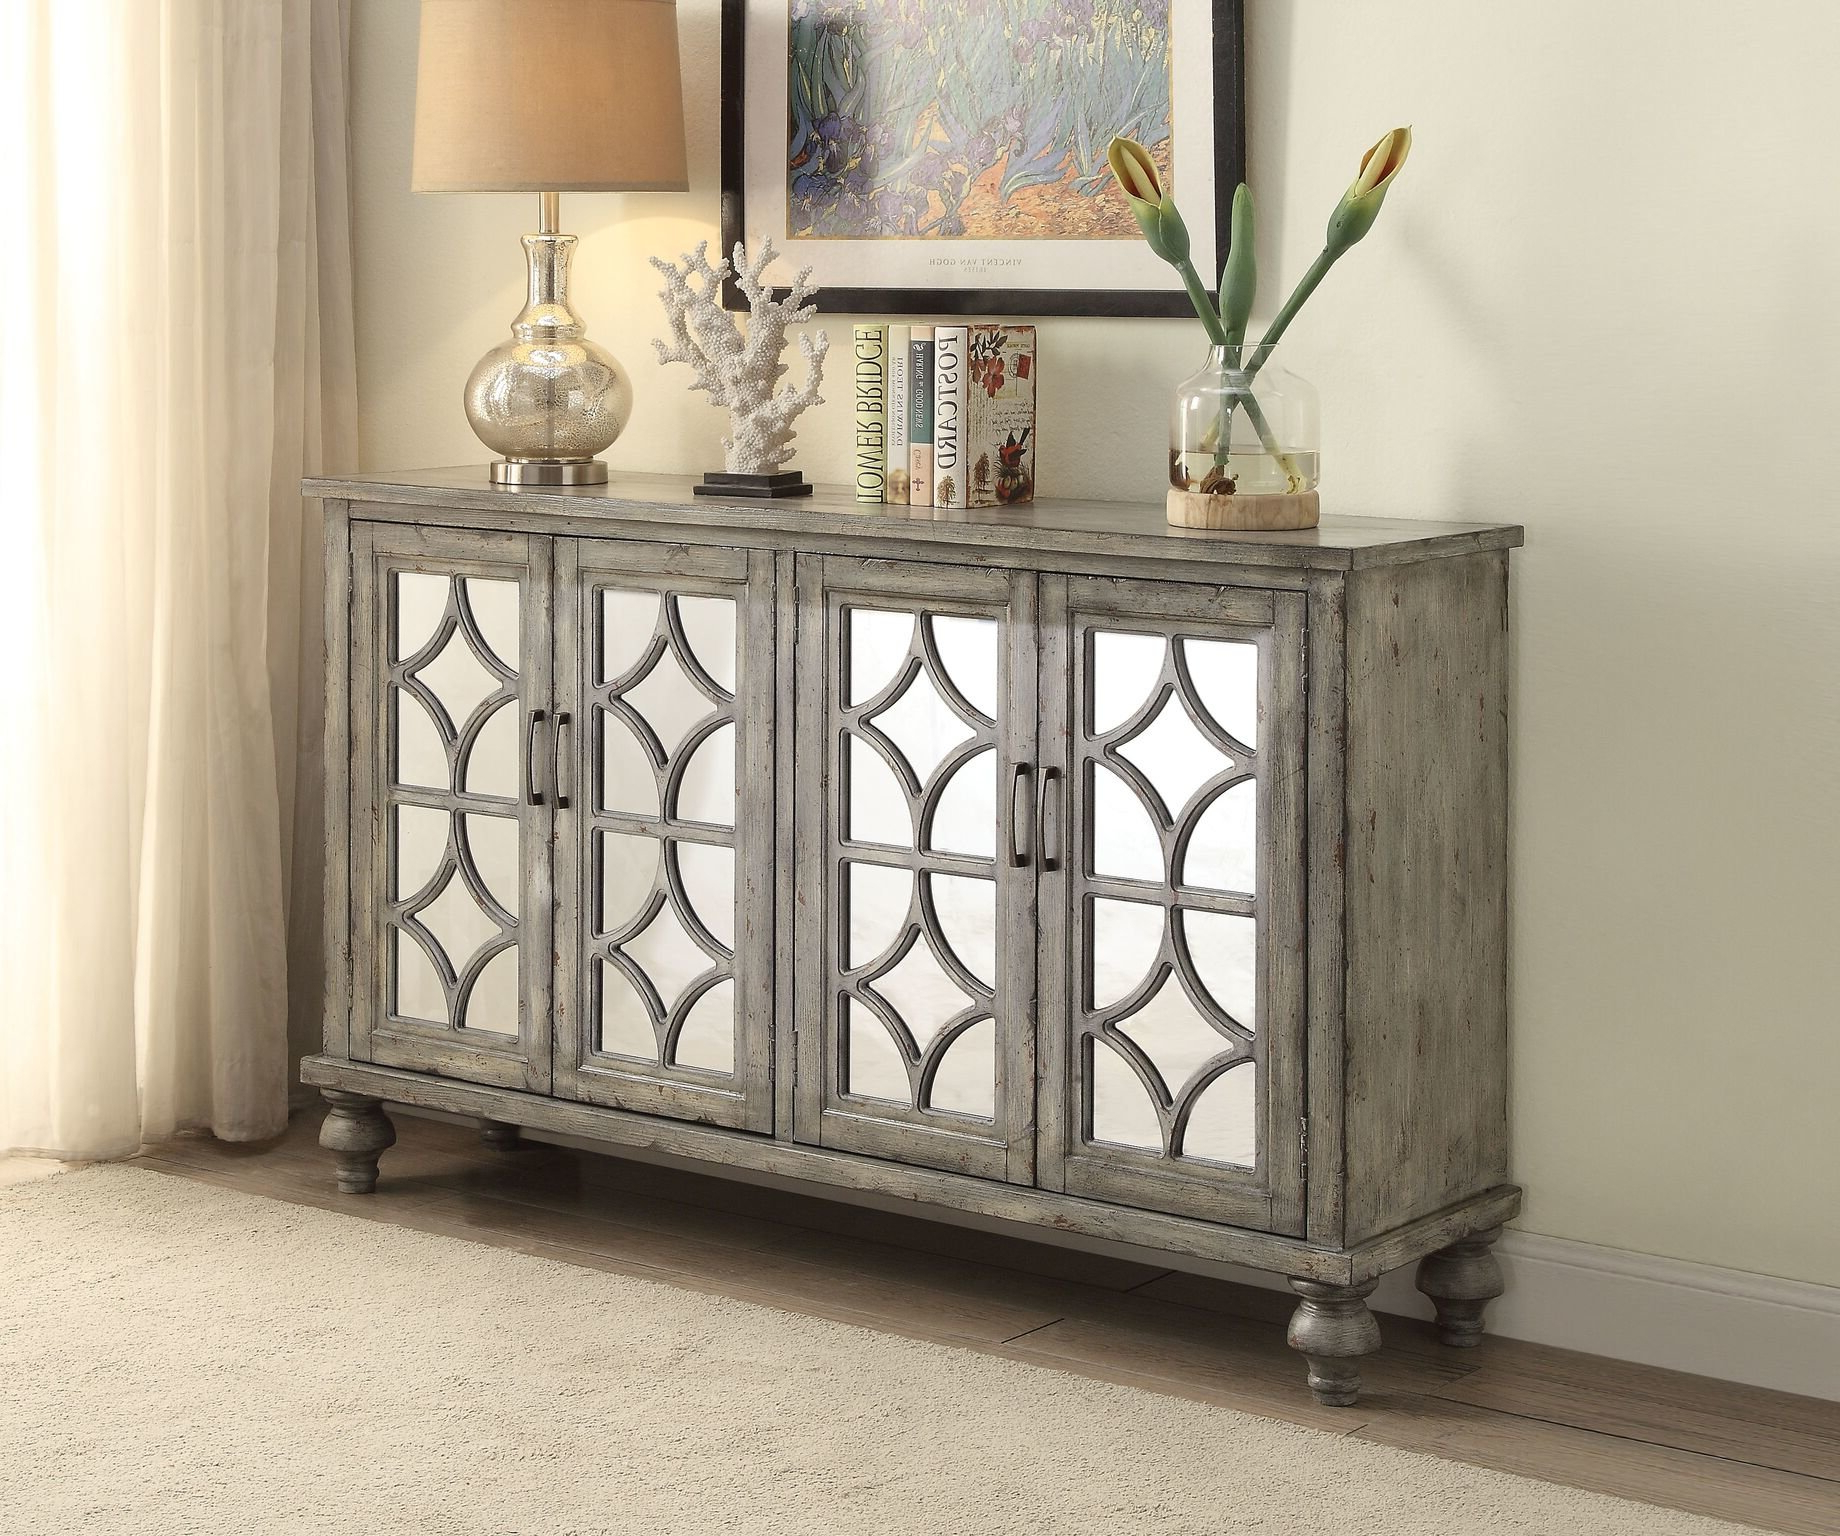 2019 Senda Credenzas Intended For Pulcova Iii Sideboard (View 1 of 20)